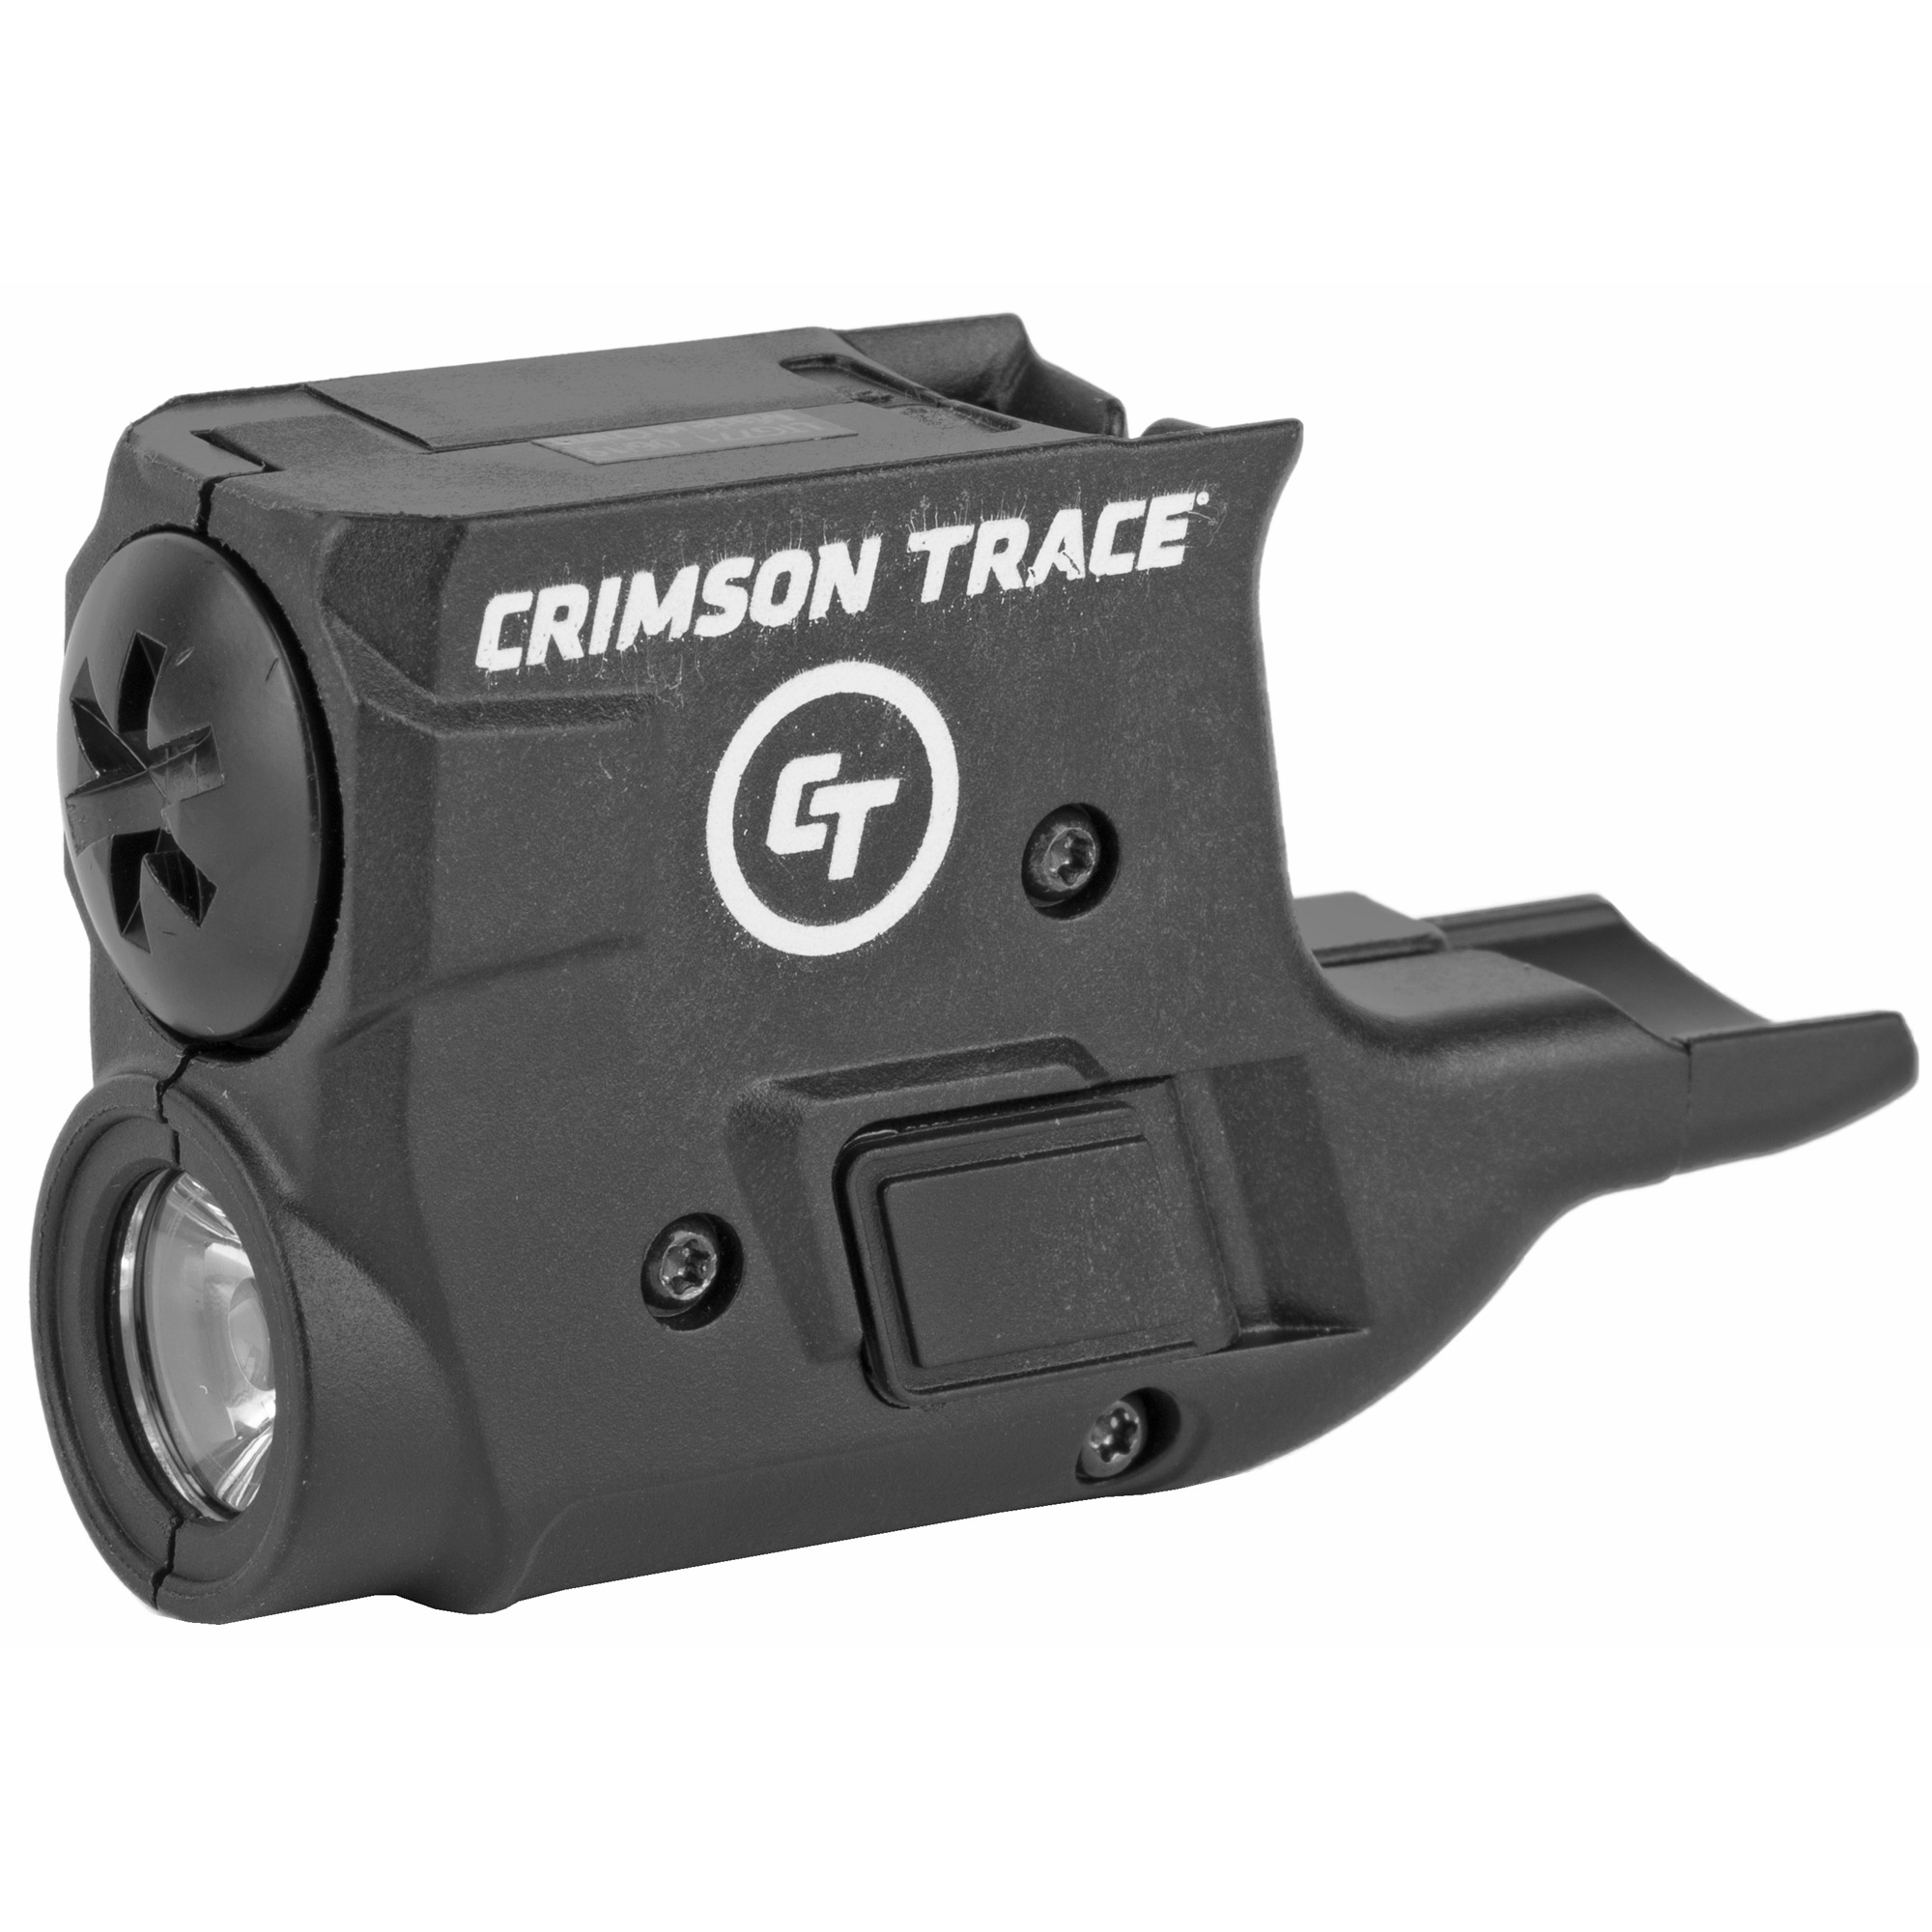 """The LTG-771 Lightguard(TM) is a 110 Lumen LED White Light designed to securely fit around the trigger guard of Springfield Armory(R) XD-S pistols. Featuring ambidextrous Instant Activation(TM) with Constant and Momentary modes"""" the LTG-771 offers over one (1) hour of illumination with two (2) 1/3N batteries (included). With ruggedized polymer construction and a rapid change battery cap"""" this tactical light offers effective illumination for XD-S owners. A best-in-class weapon mounted light from the brand you trust for personal protection optics."""